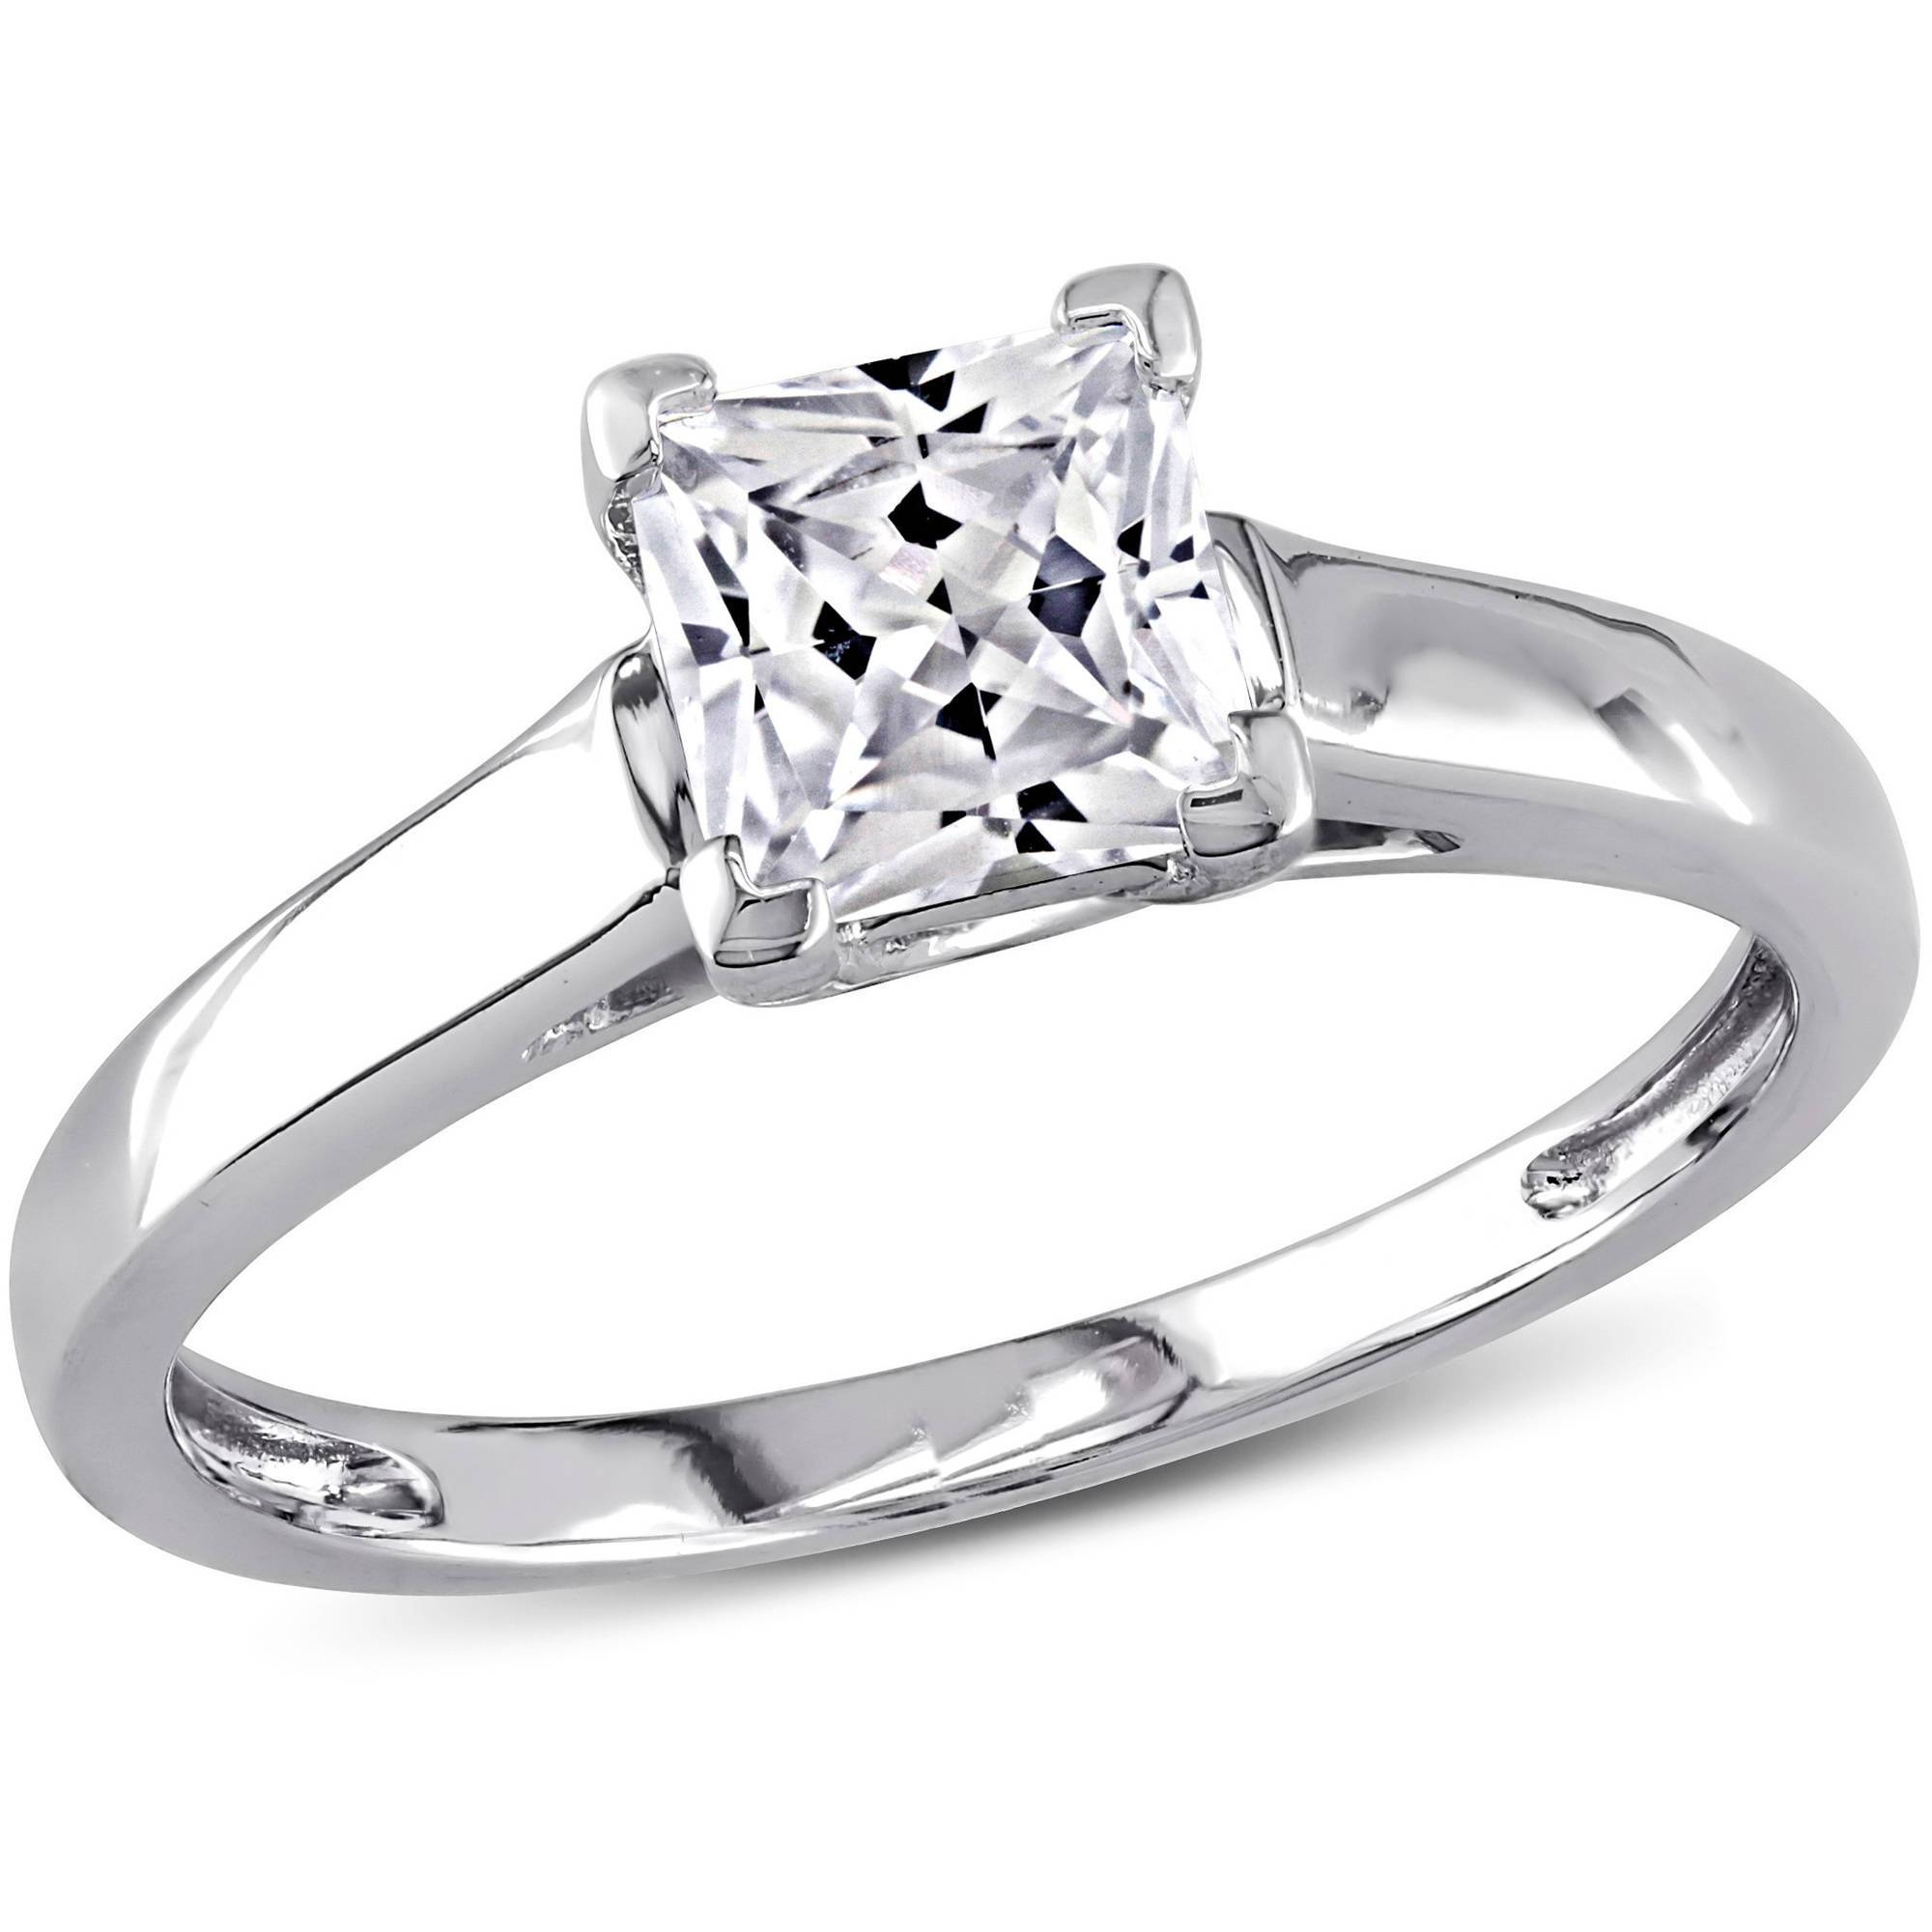 Miabella 1 Carat T.g.w. Princess Cut Created White Sapphire 10Kt Within Gold Engagement And Wedding Rings (Gallery 1 of 15)